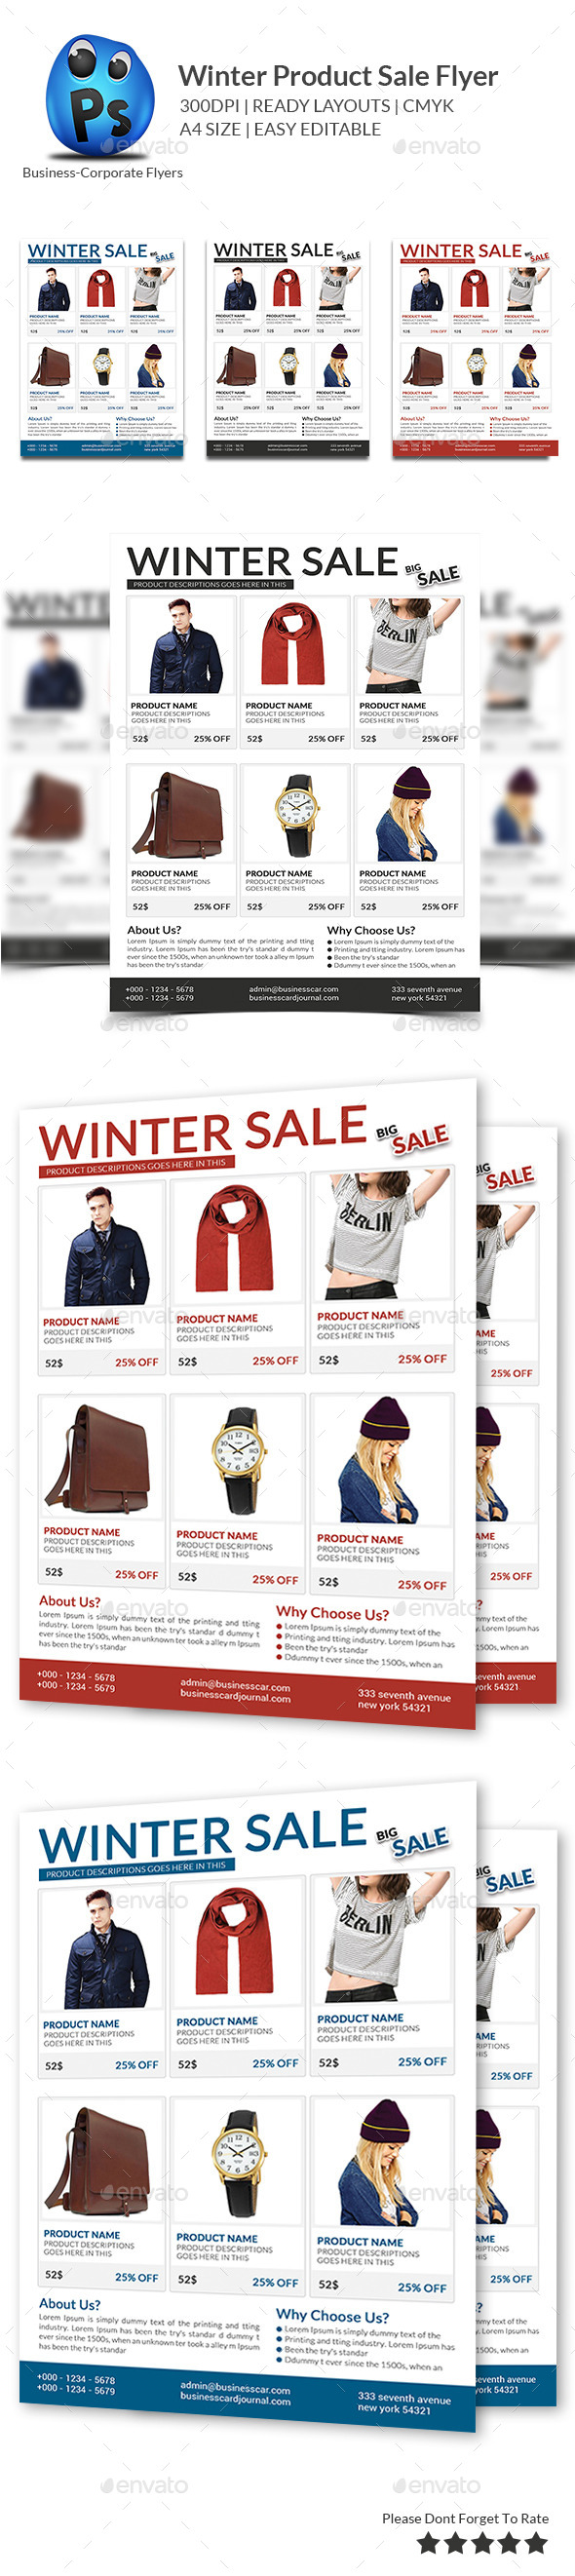 GraphicRiver Winter Product Sale Flyer 9863388